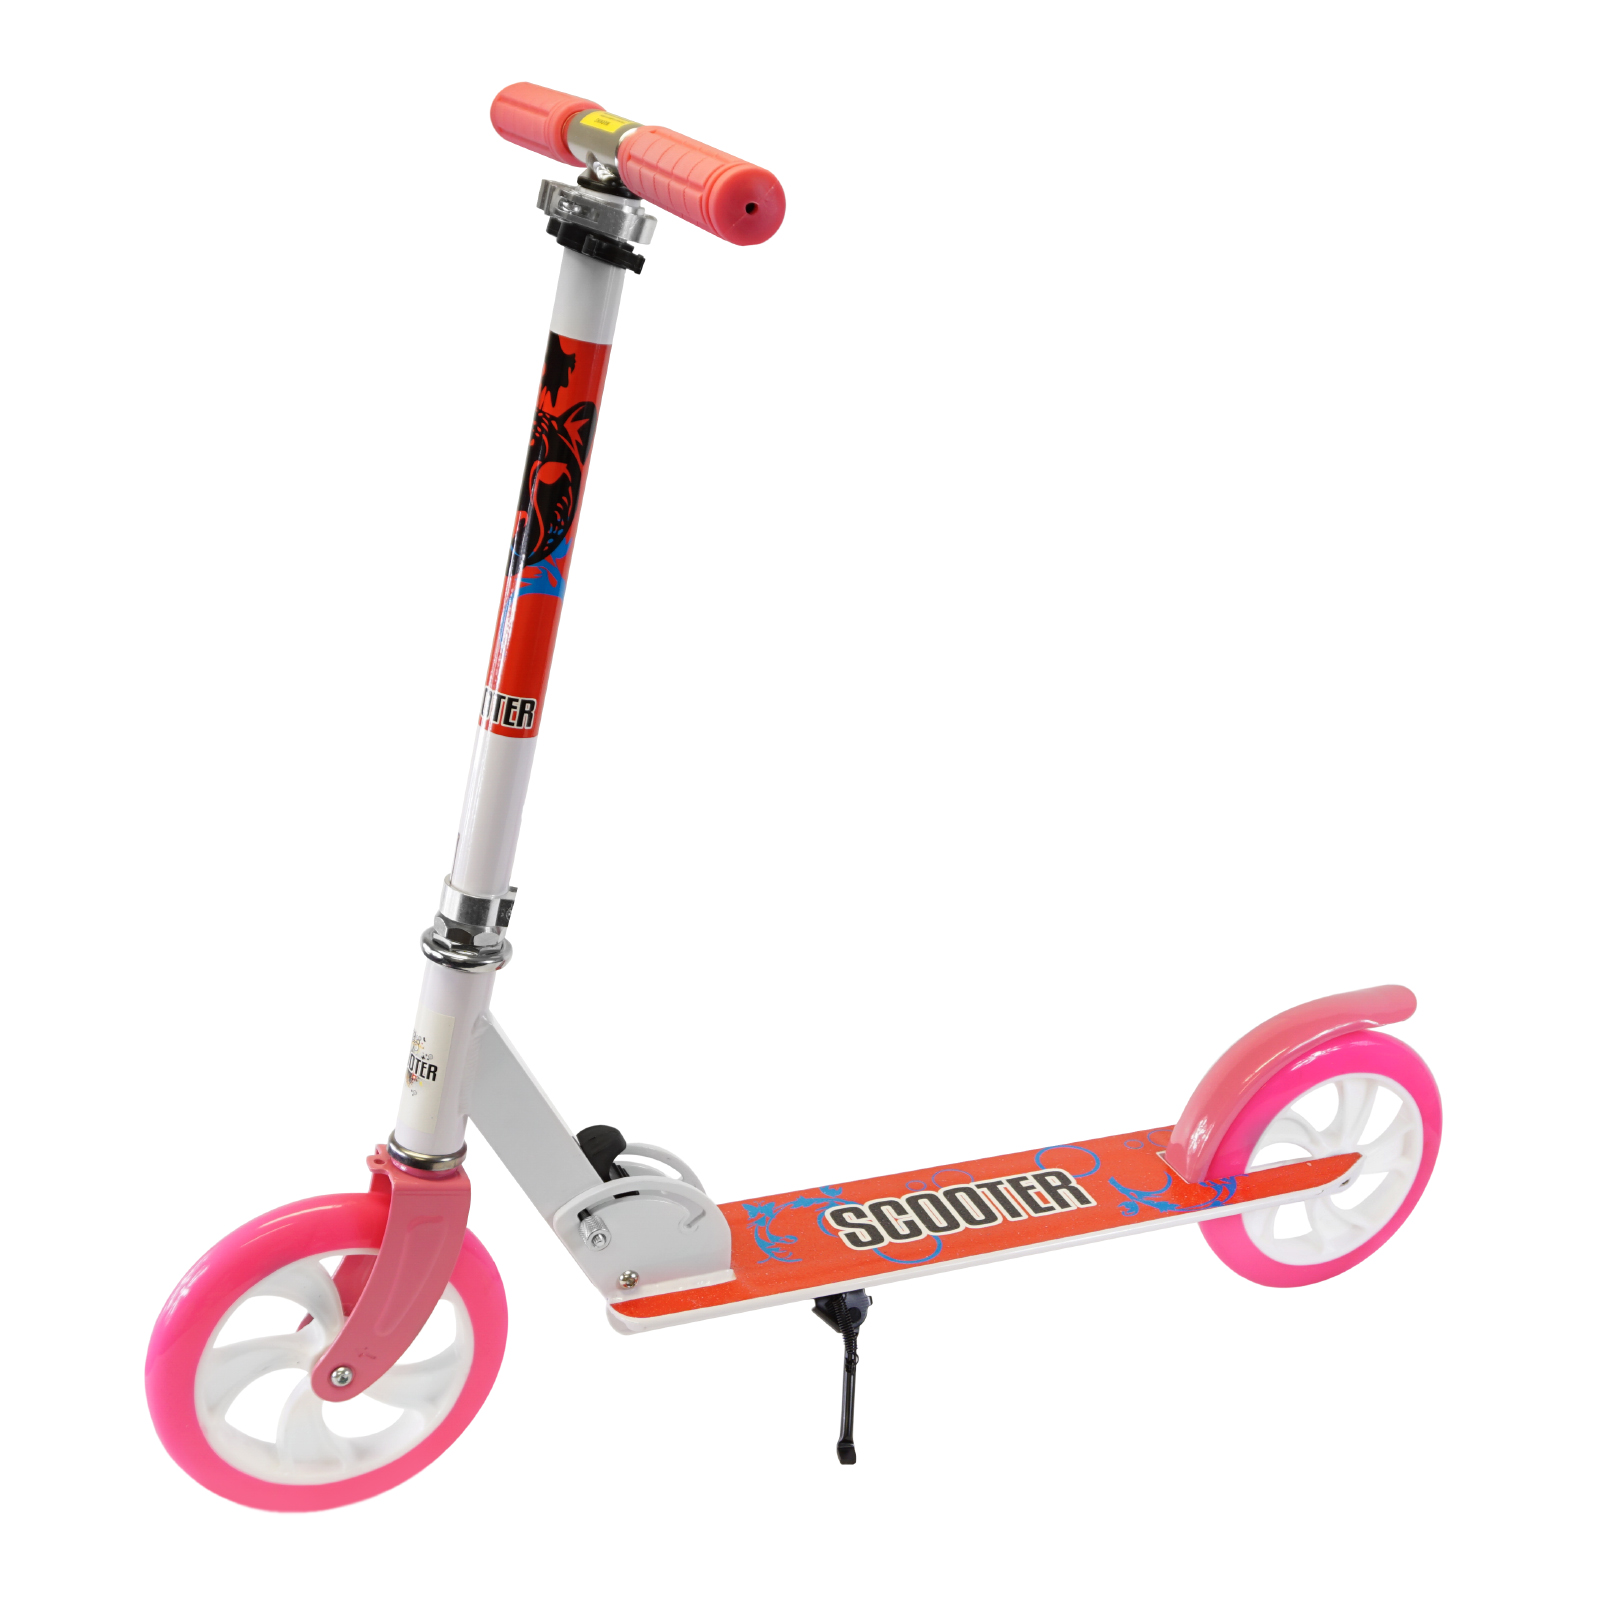 Adjustable Folding Metal Kids Teen Push Kick Scooter by Scale Sports